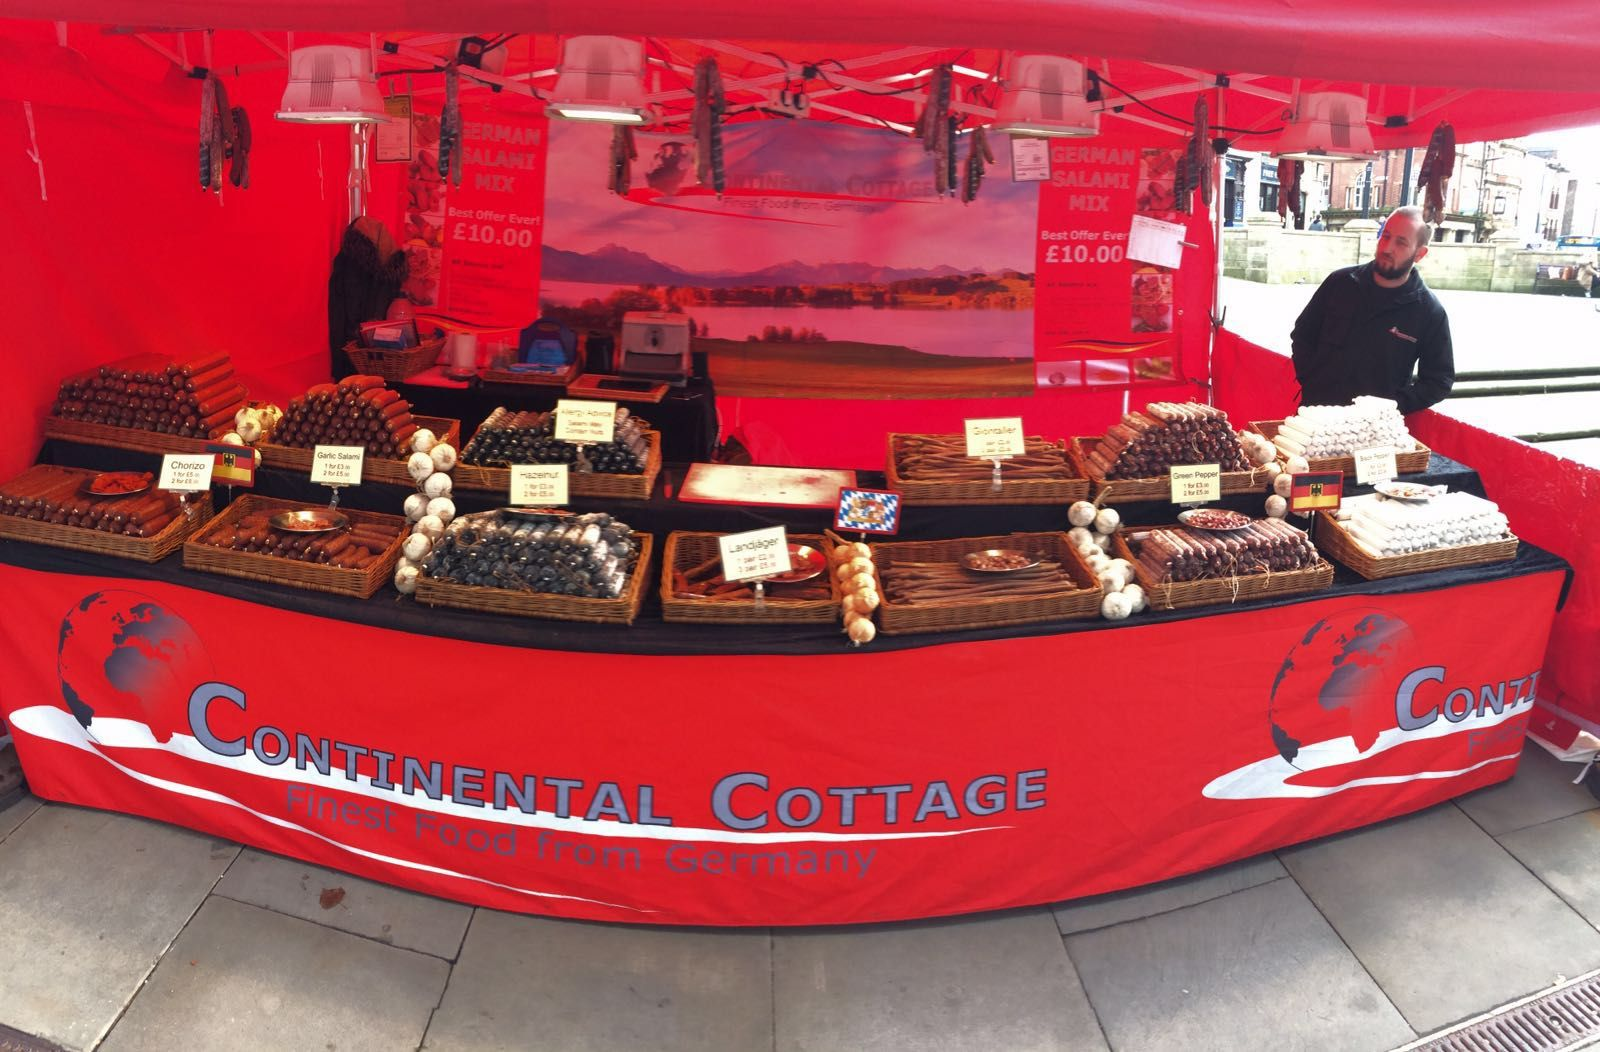 Continental Cottage At The Wigan Food And Drink Festival 1st 5th March 2016 Food Festival Wigan Cottage